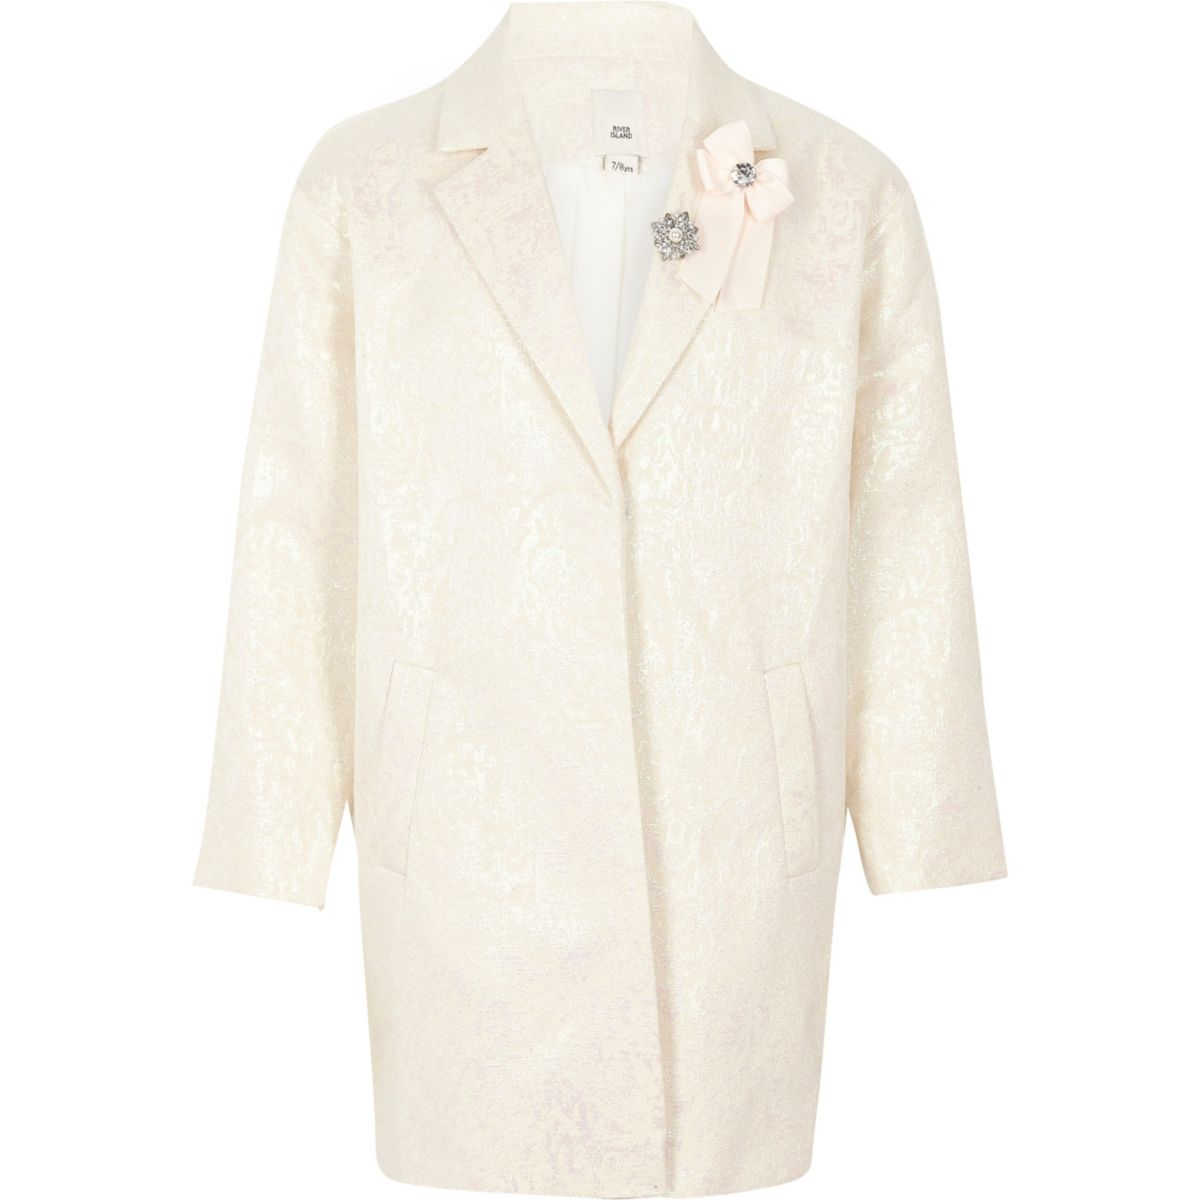 Girls white iridescent jacquard brooch coat